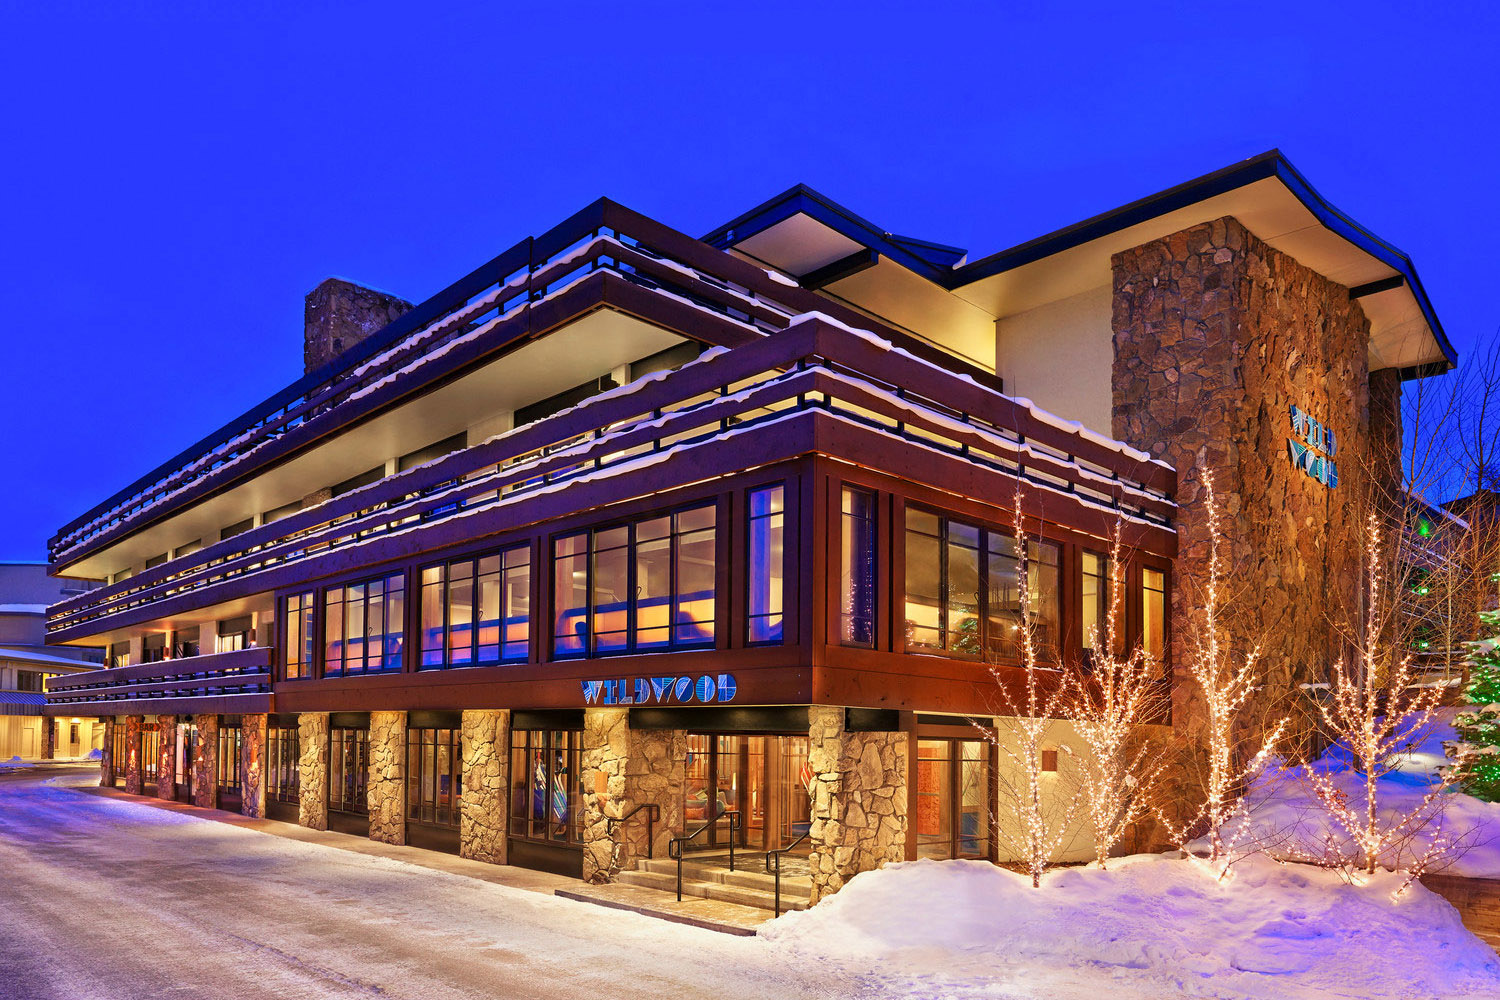 Wildwood - Explore our fun, retro Snowmass hotel, located in the Westin/Wildwood Snowmass Resort complex, adjacent to the slopes of Snowmass Mountain and the Snowmass Village Mall.The Wildwood Snowmass hotel offers an ideal location, just steps from the slopes and the finest shops, dining and nightlife in Snowmass Village. Plus, as a Wildwood guest you'll enjoy guest charging privileges at the Westin next door.